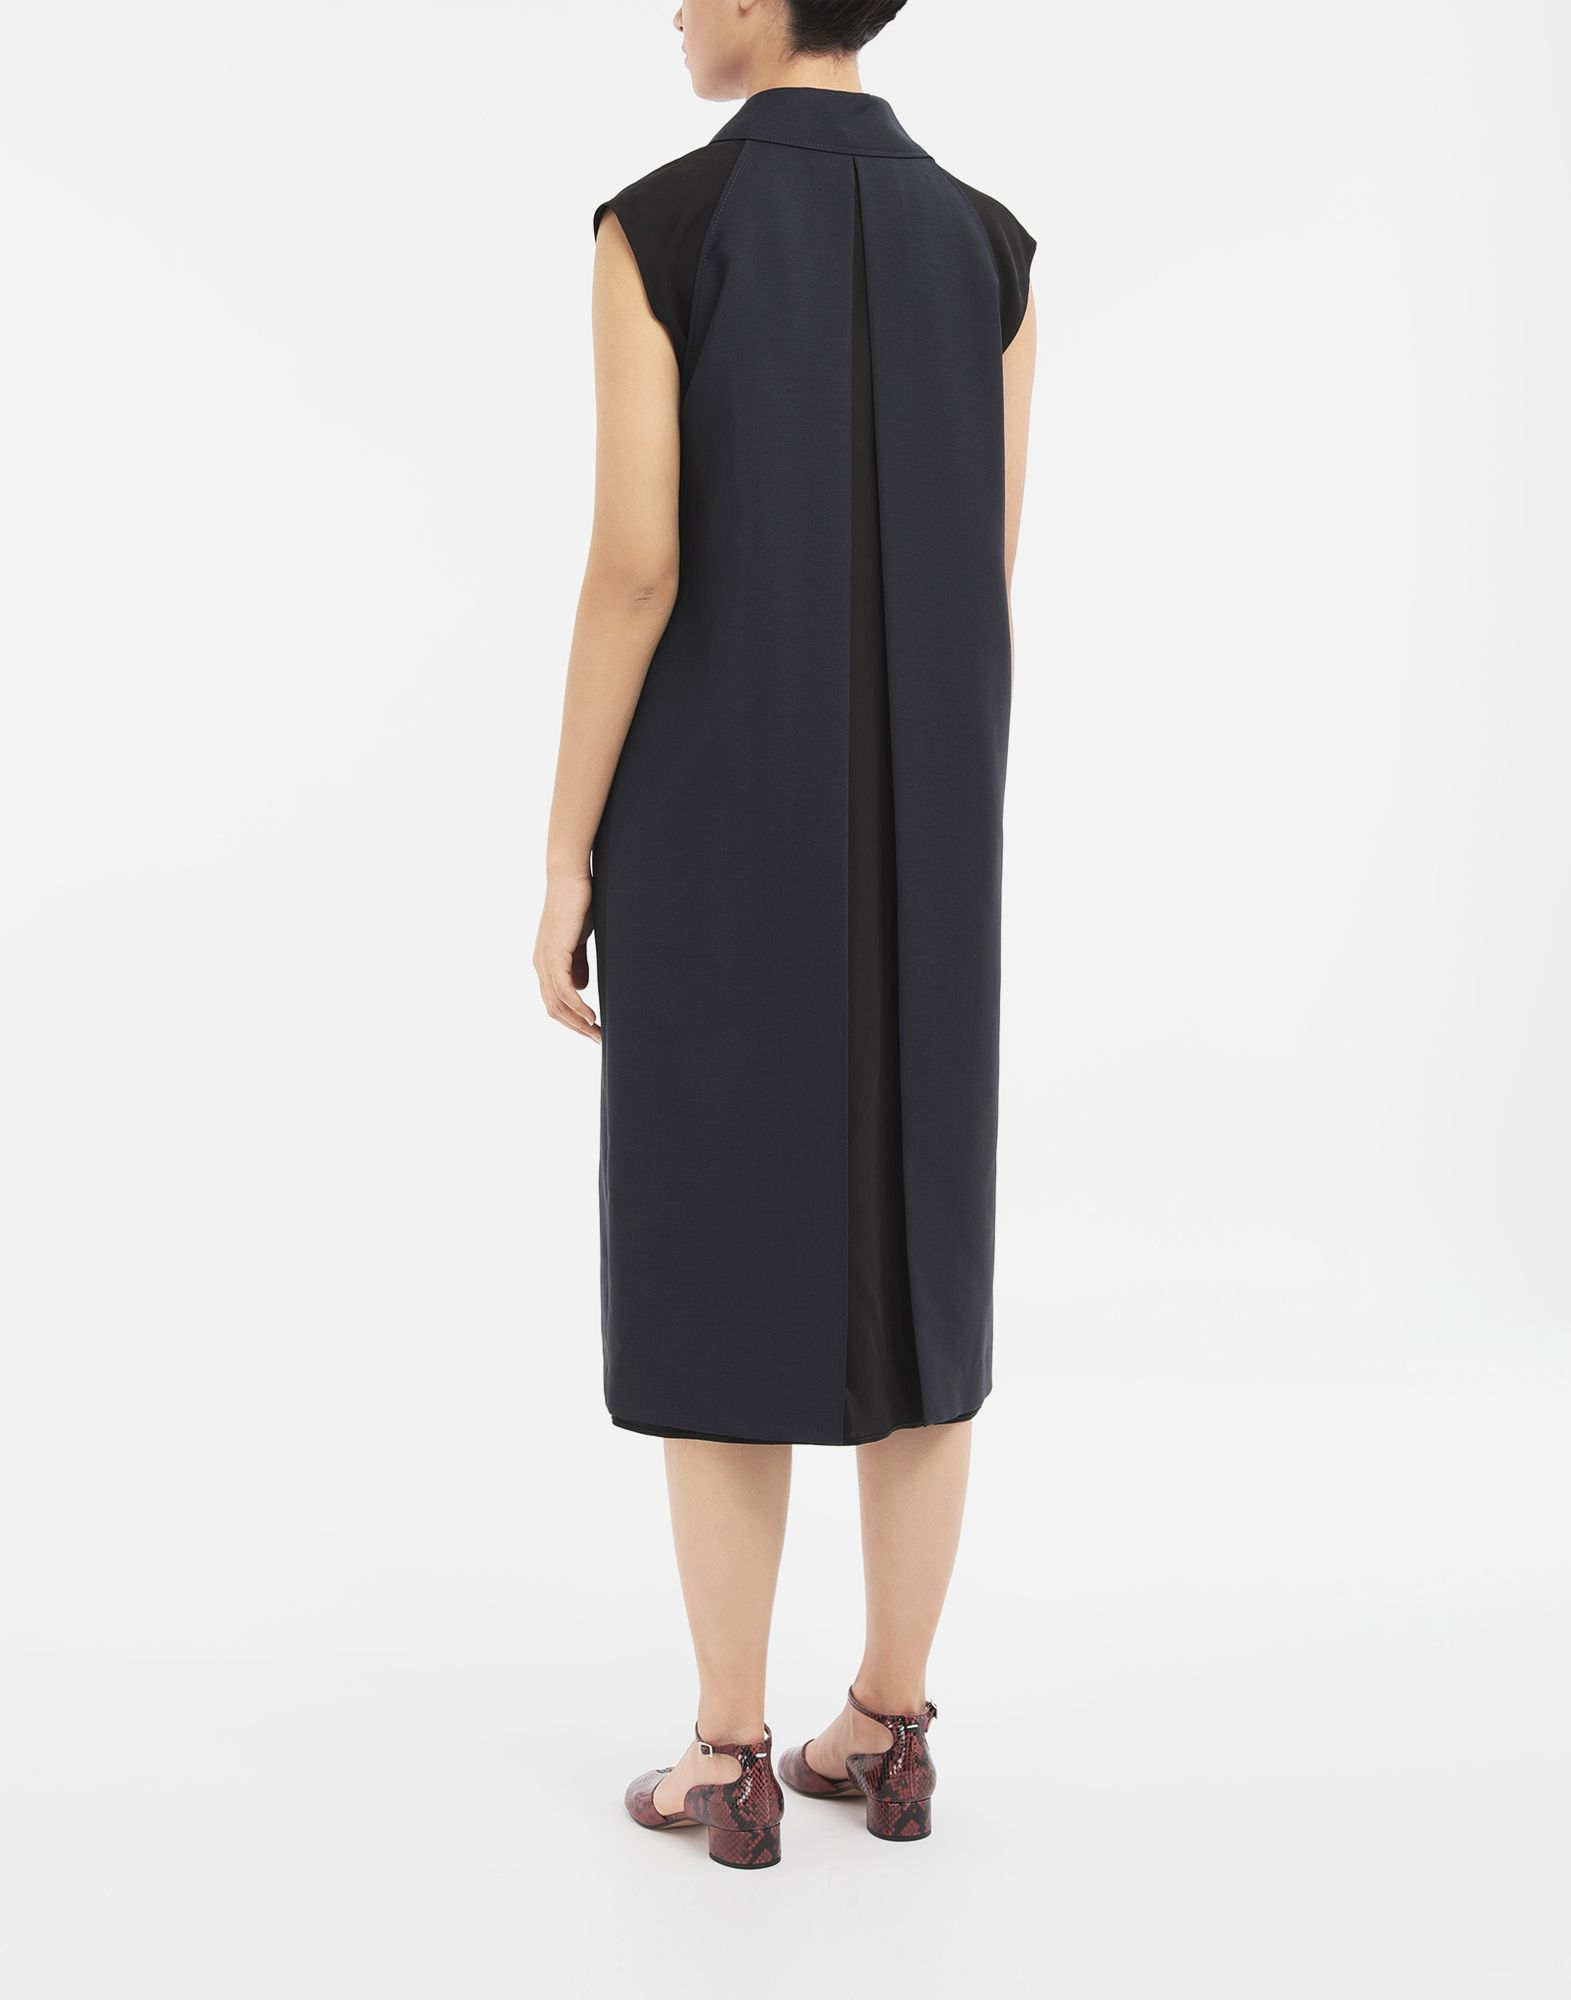 MAISON MARGIELA Spliced midi dress Dress Woman e